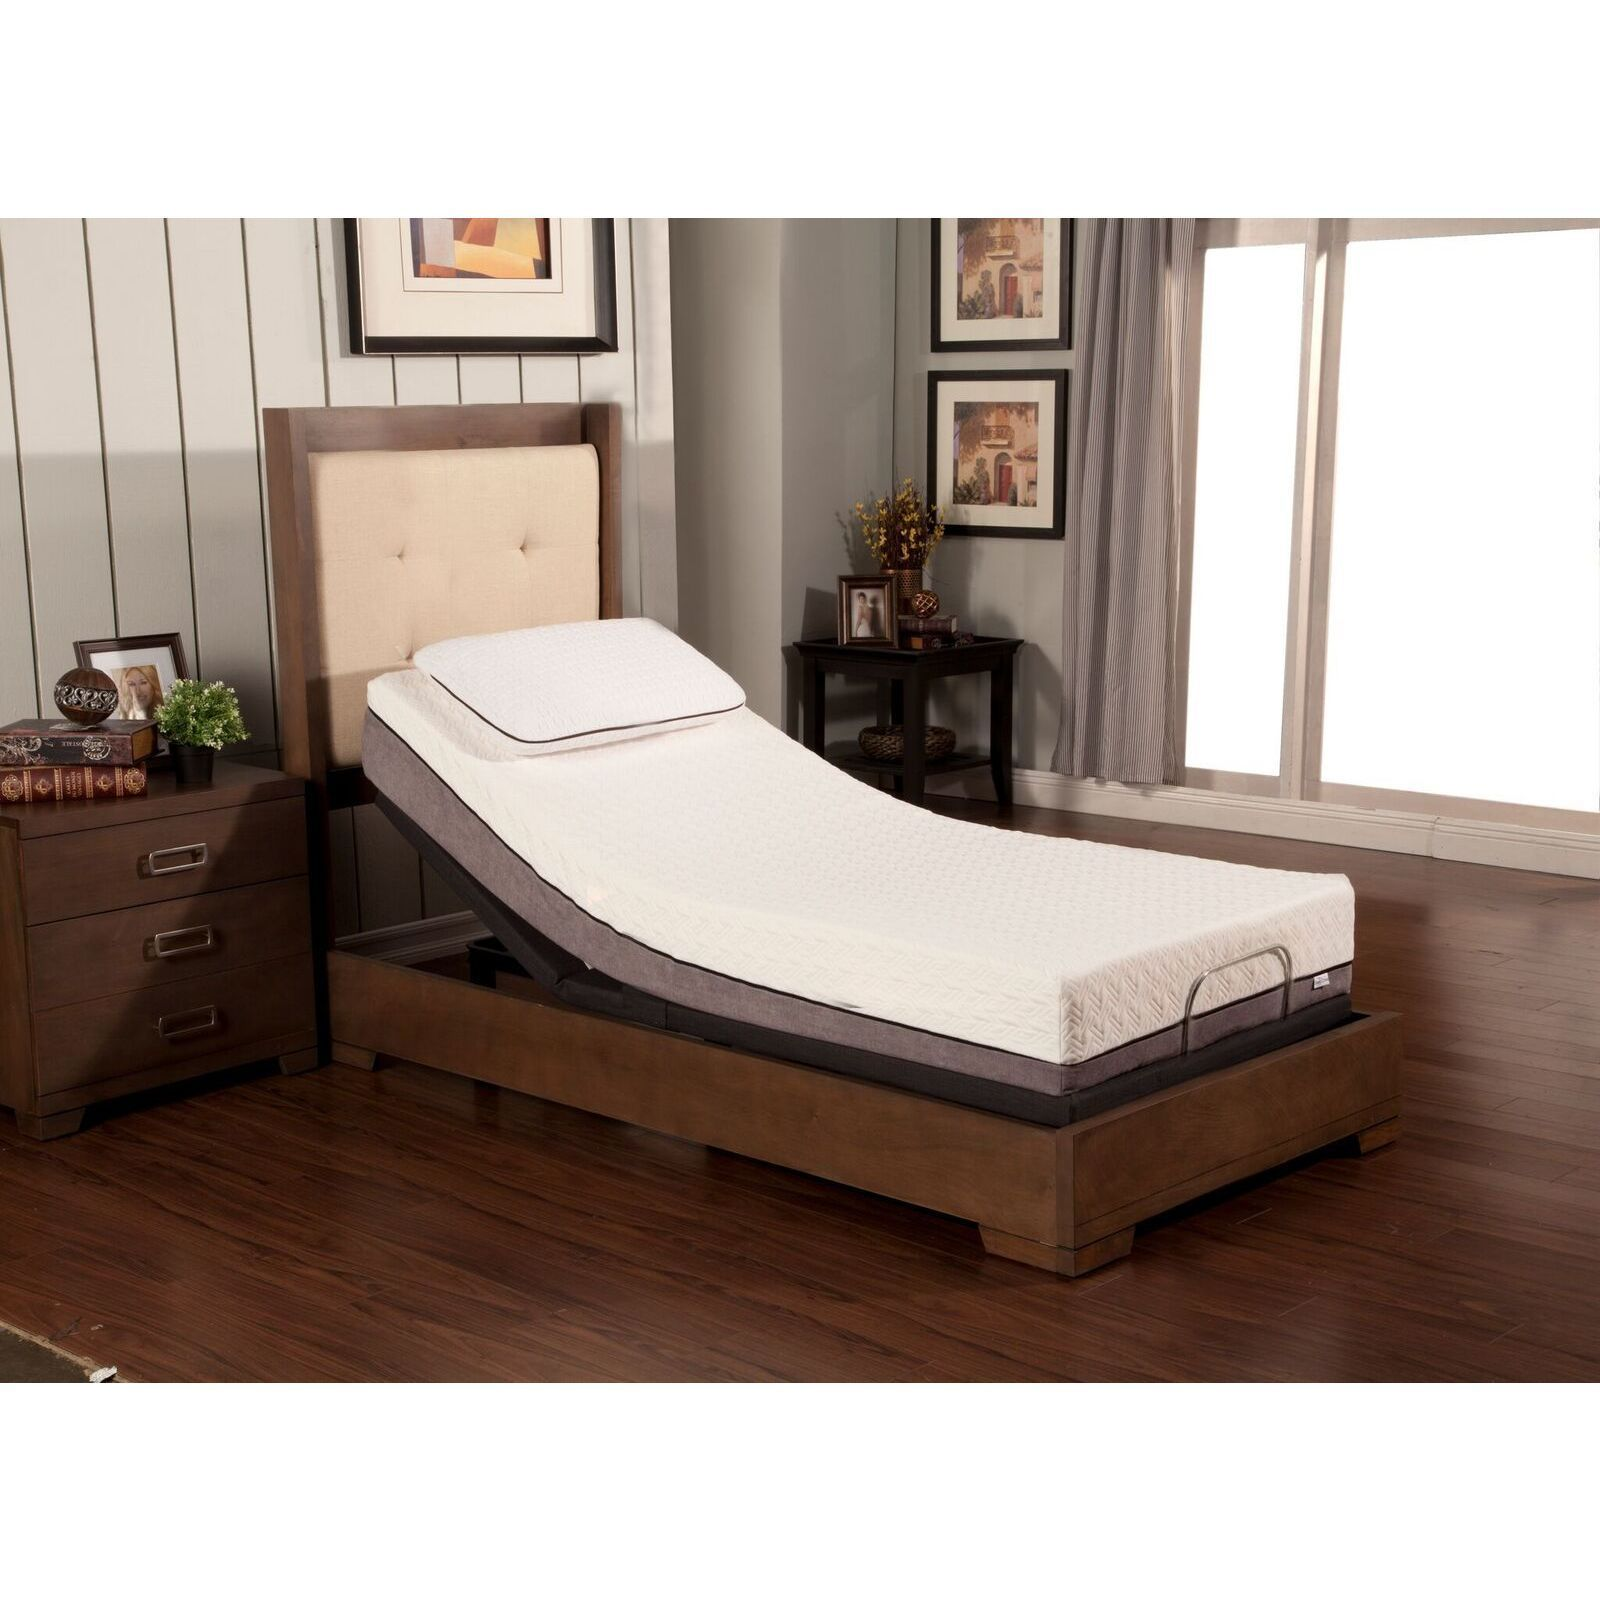 Sleep Zone Huntington 10inch Memory Foam Mattress and